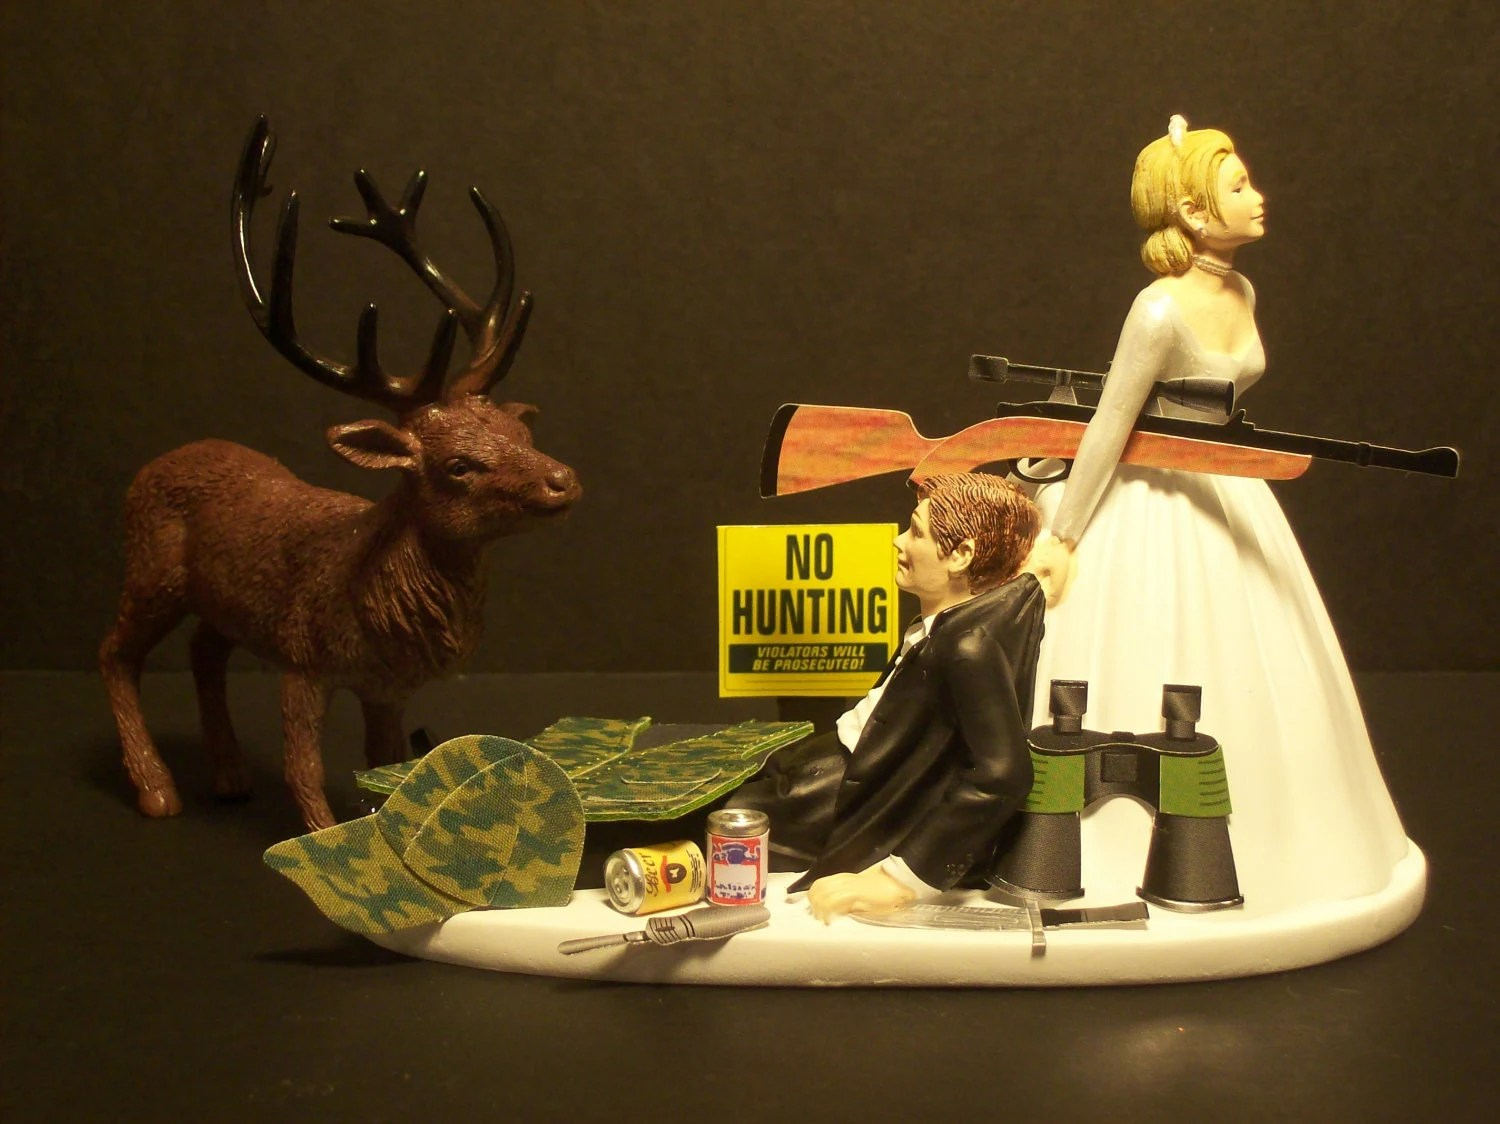 NO HUNTING DEER Bride And Groom Wedding Cake Topper By